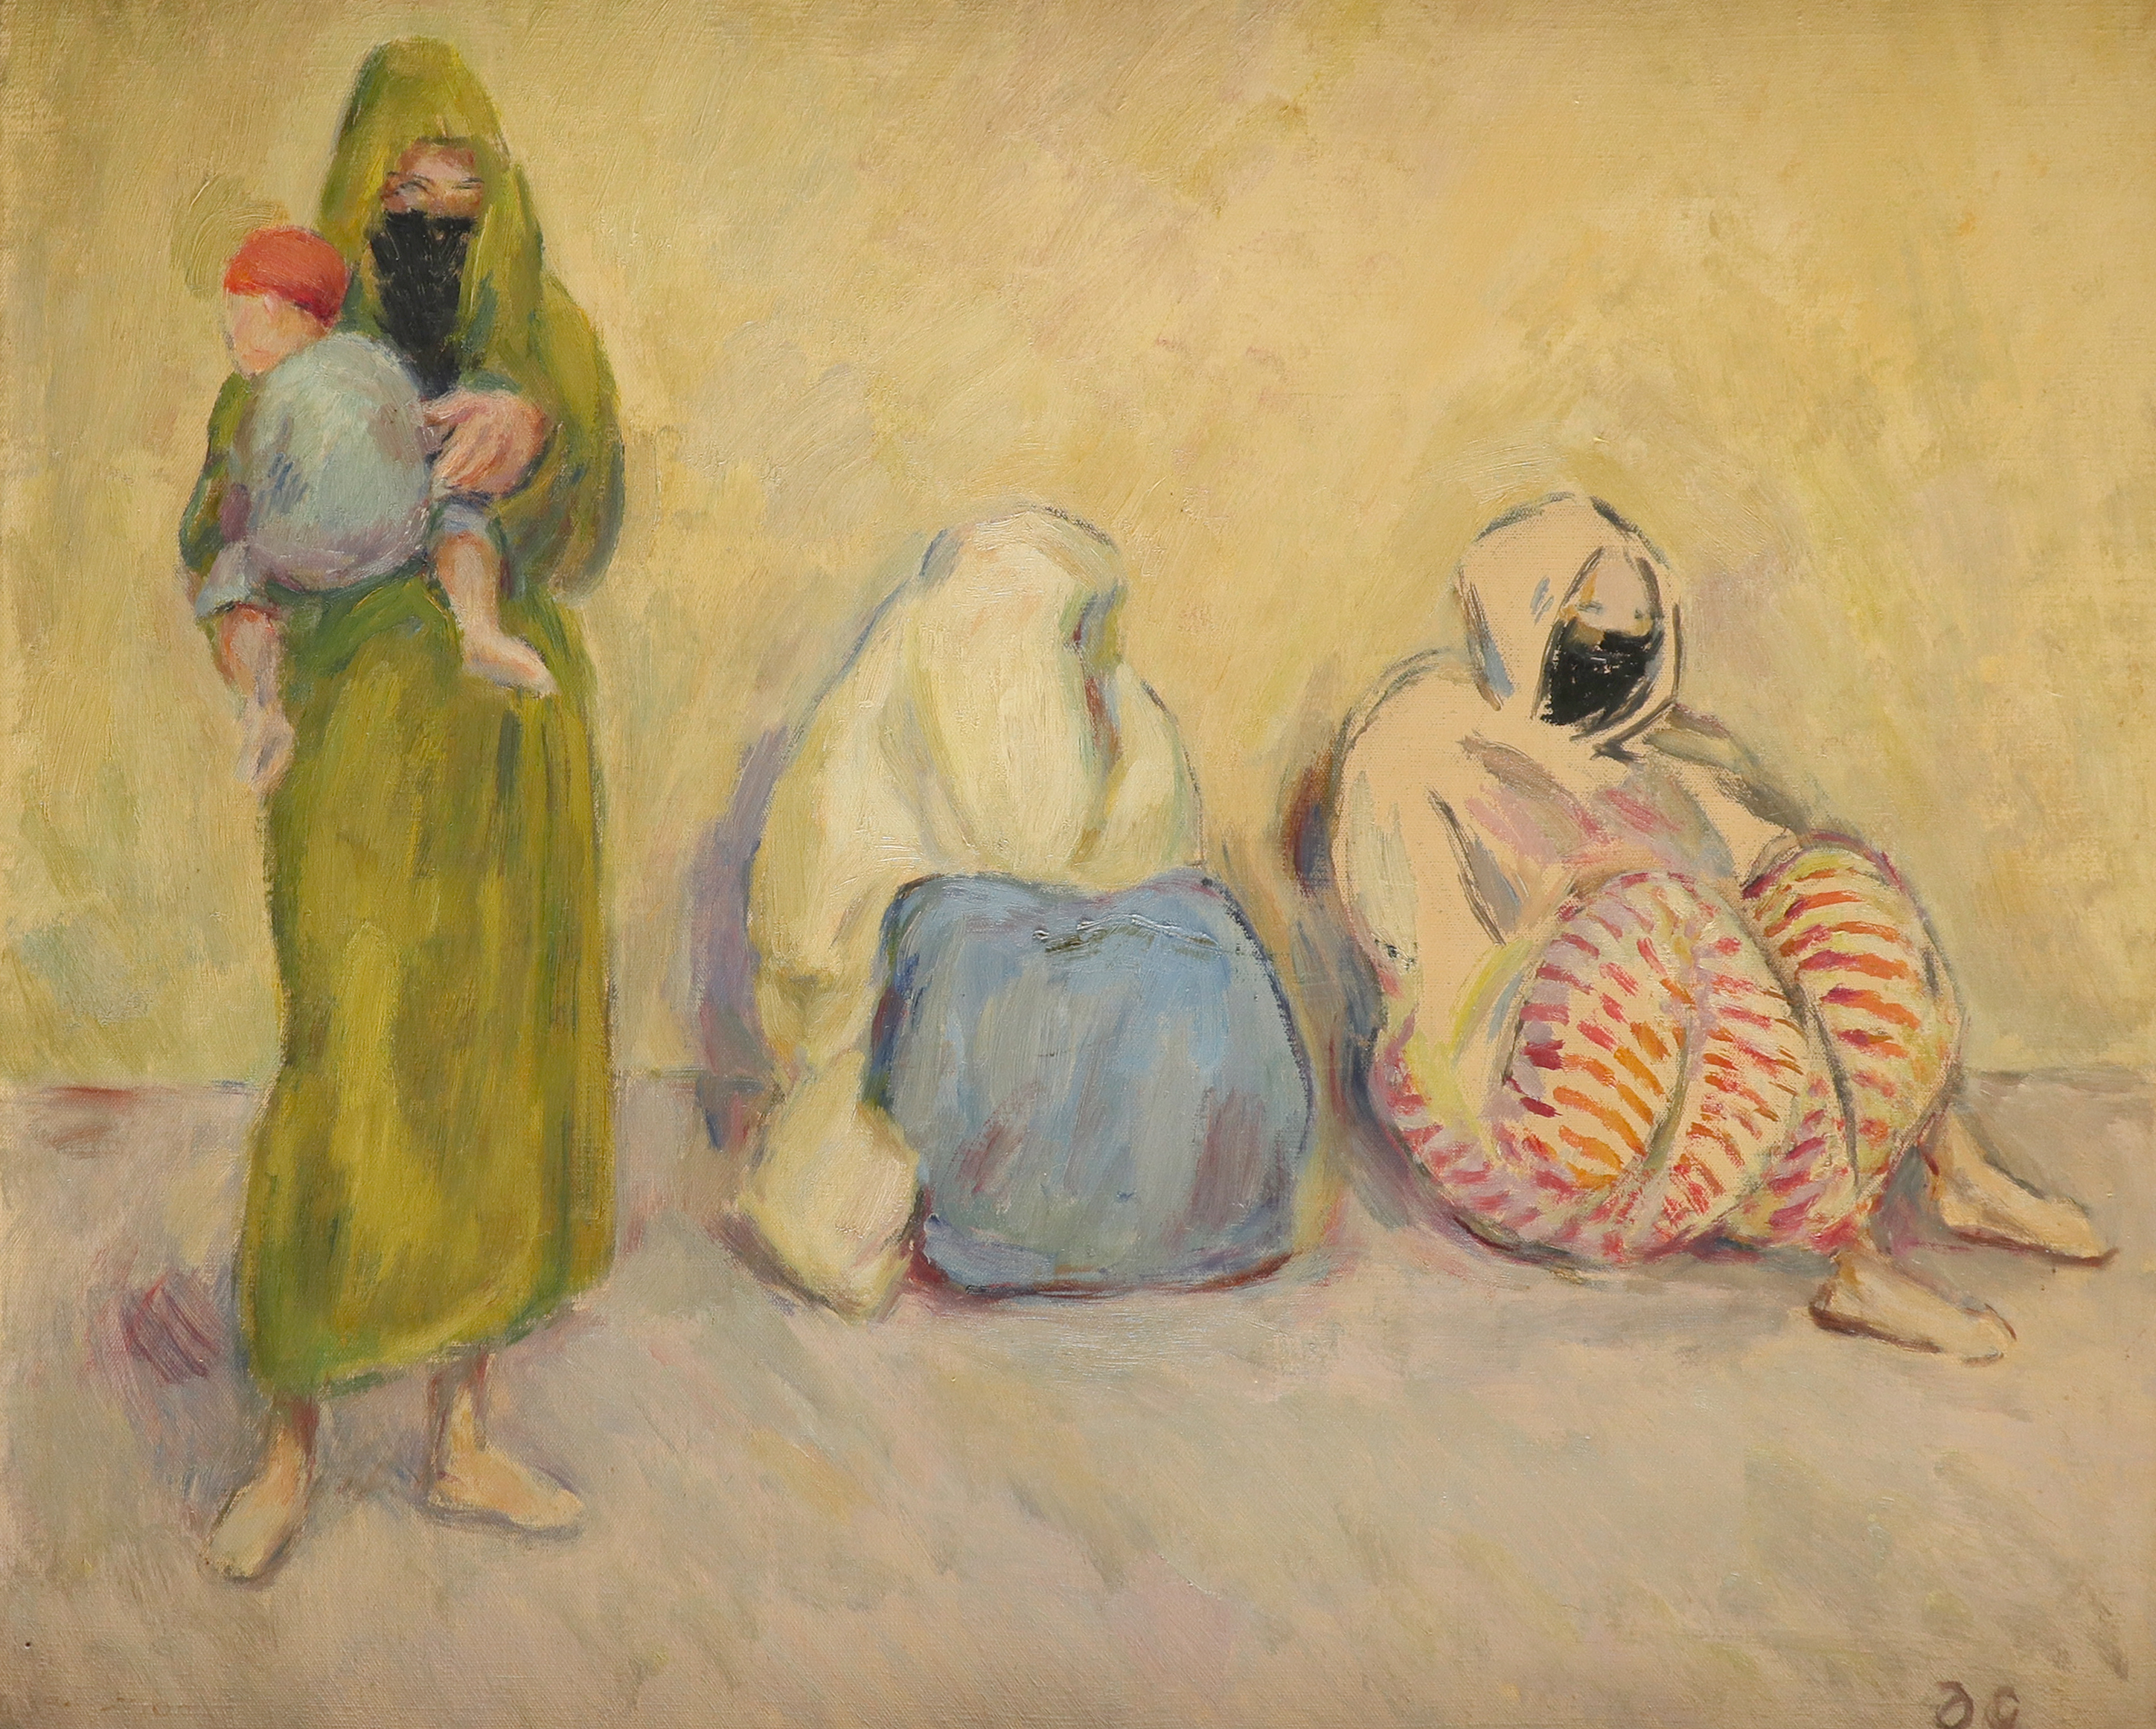 ‡Duncan Grant (1885-1978) Waiting for the Bus, Fez Signed with initials DG (lower right), and